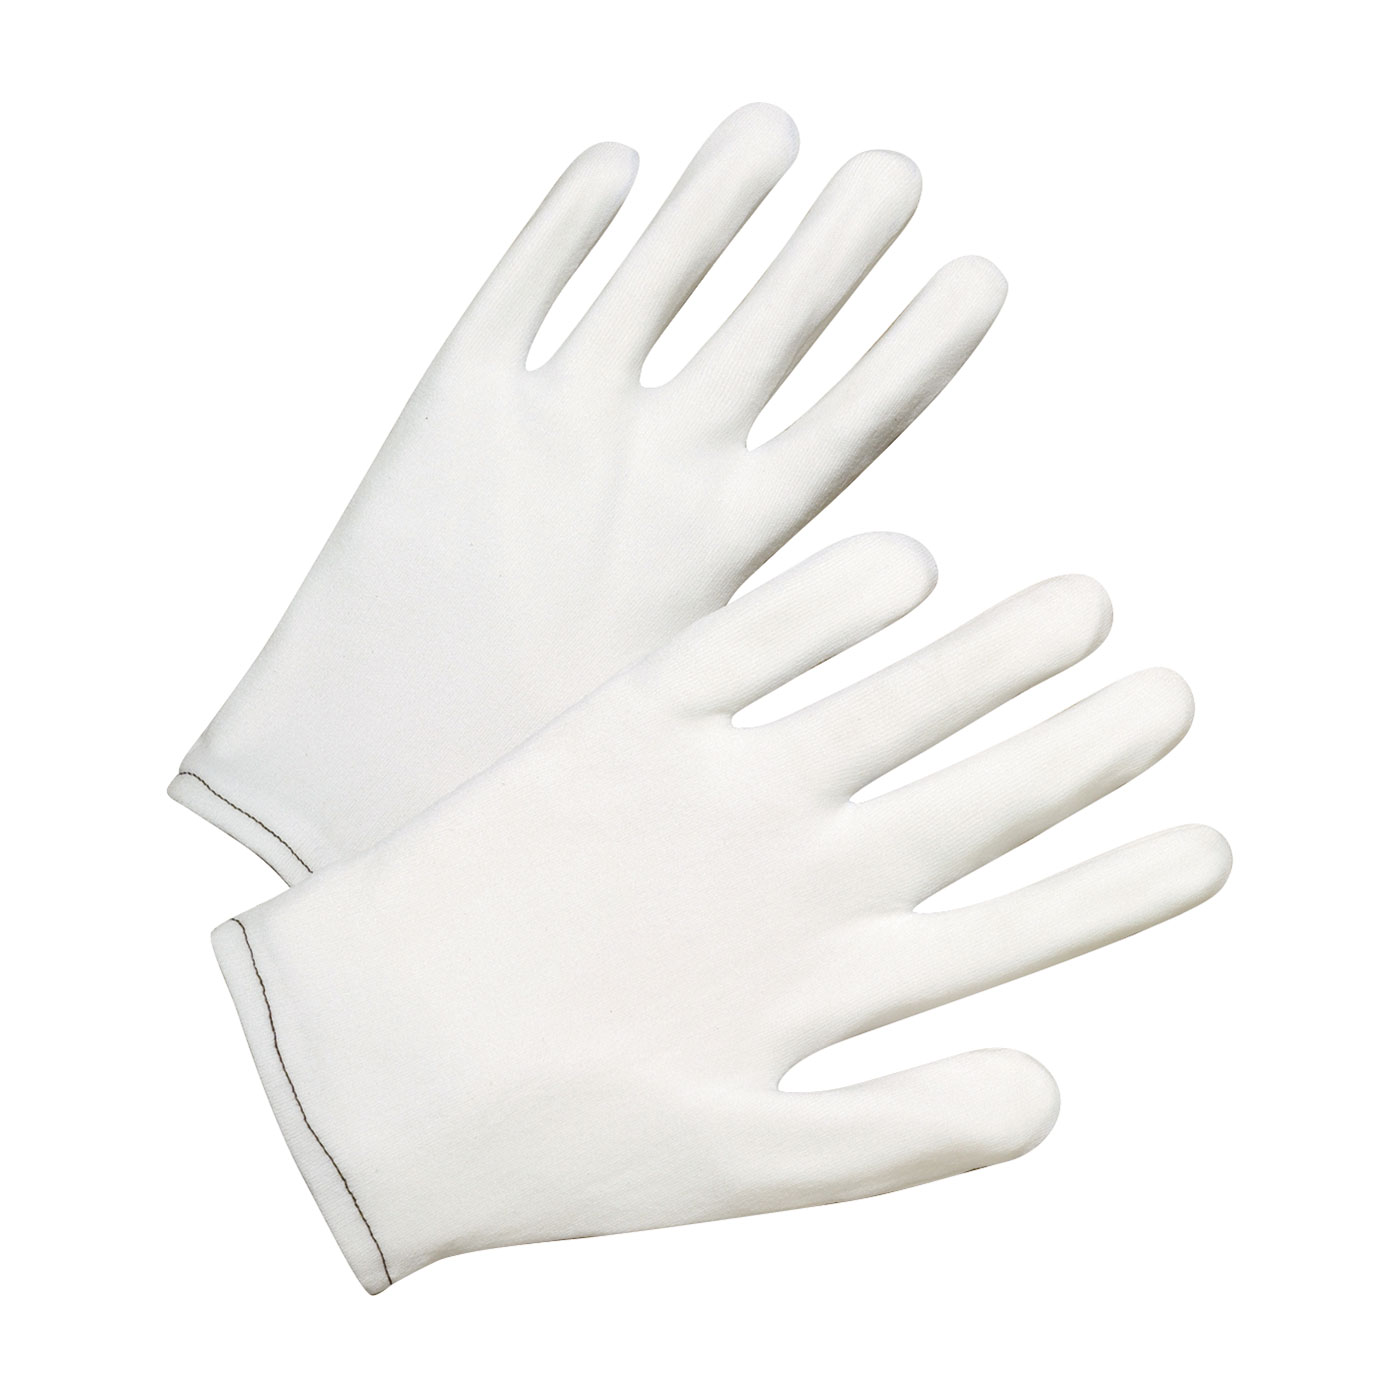 70 Denier Tricot Inspection Glove with Rolled Hem Cuff, White, L